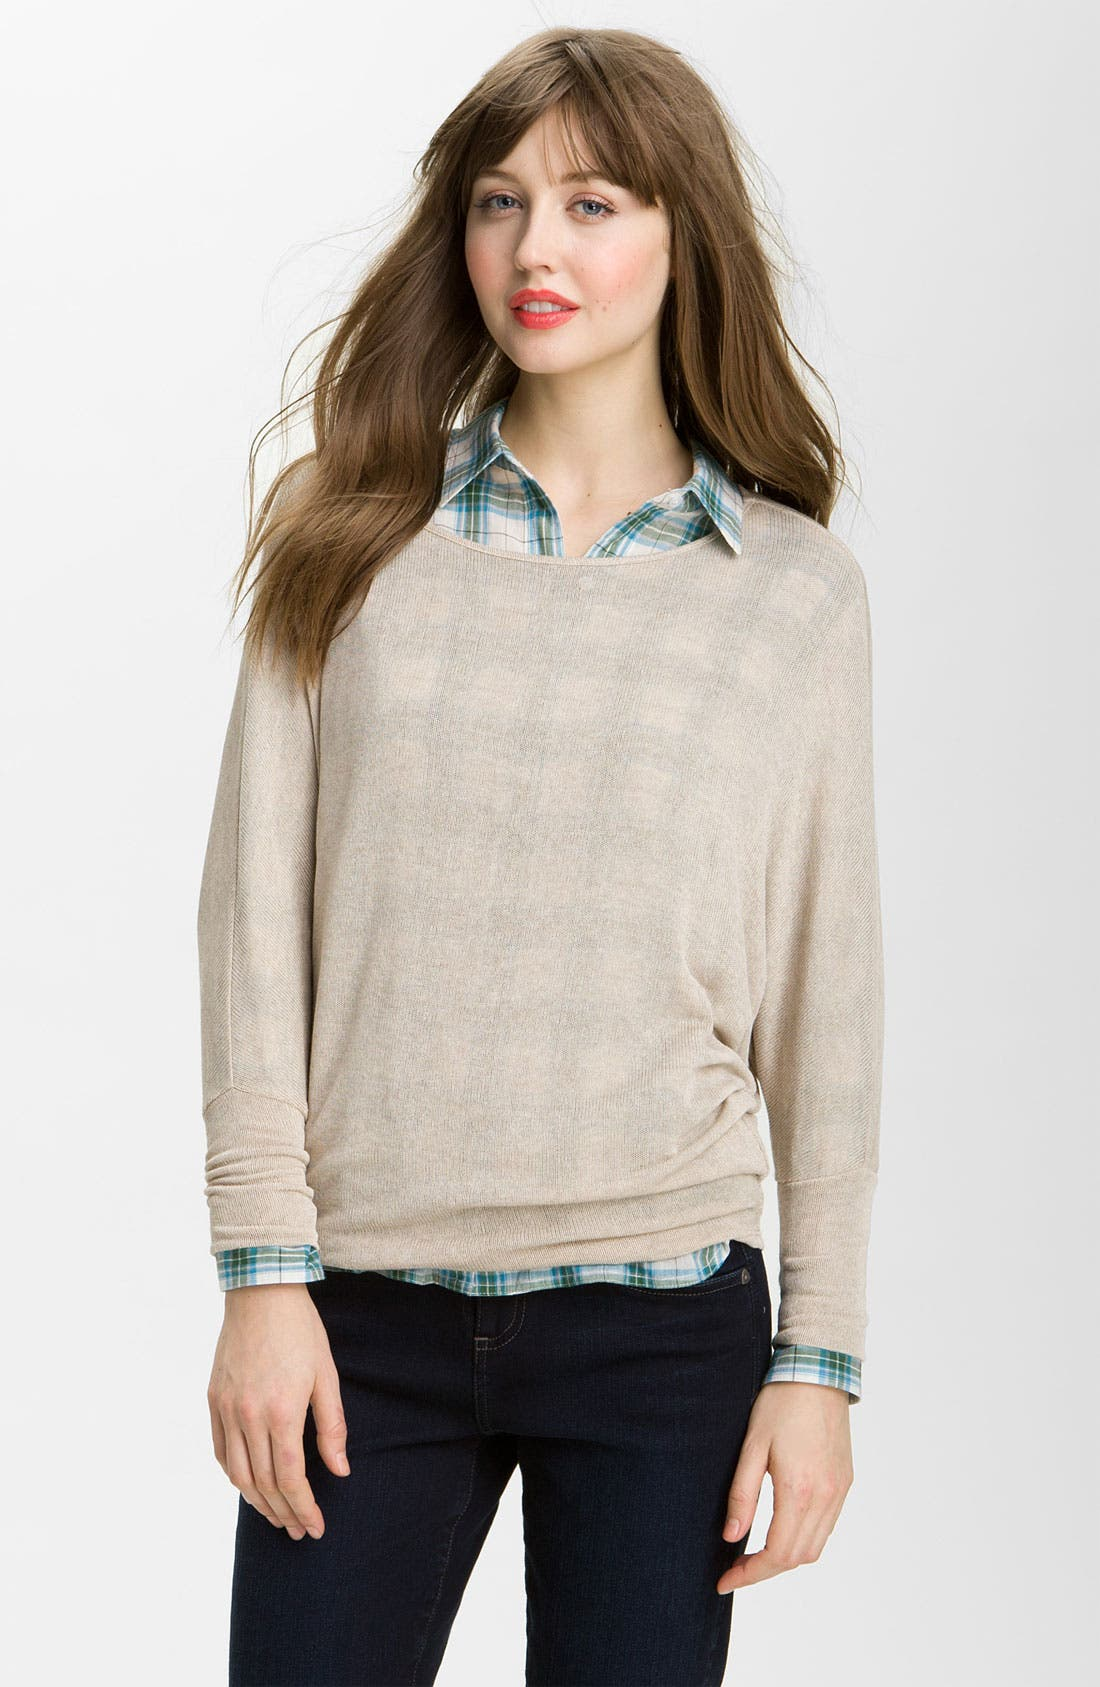 Main Image - KUT from the Kloth Batwing Sleeve Sweater Knit Top